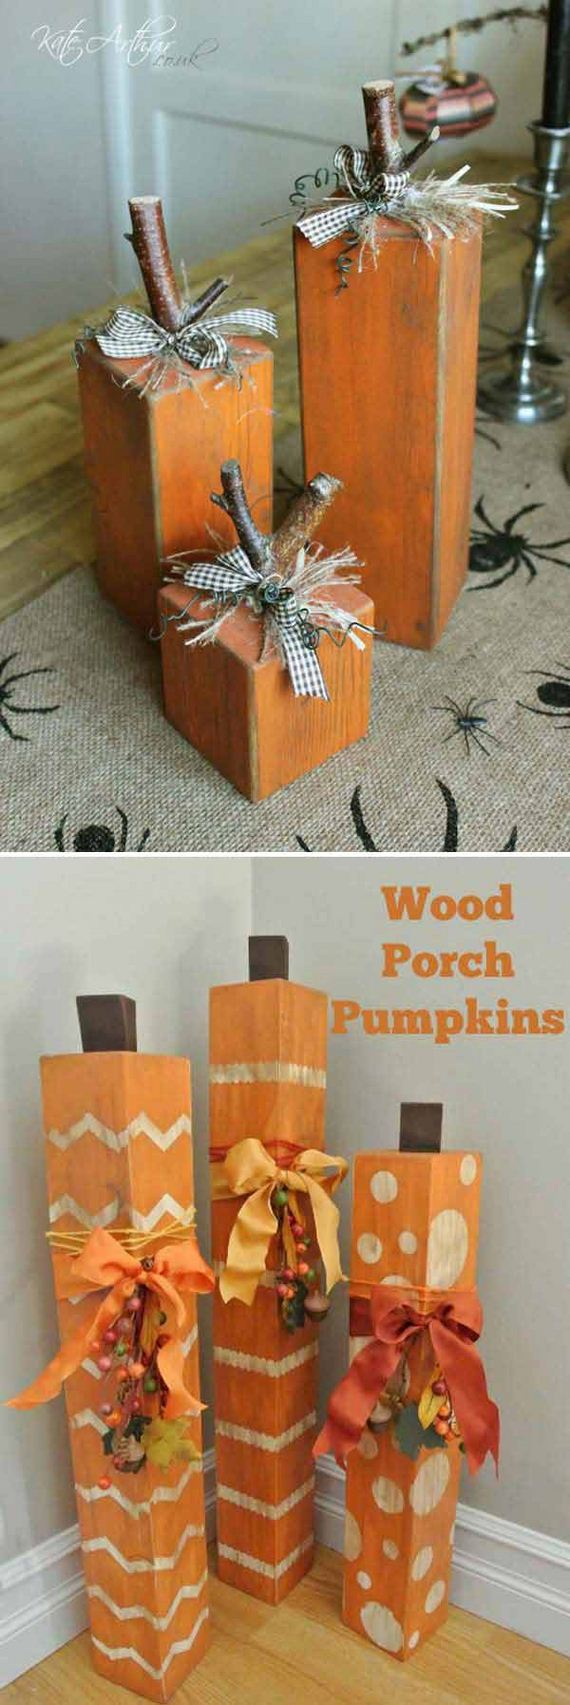 10-halloween-decorations-made-out-of-recycled-wood